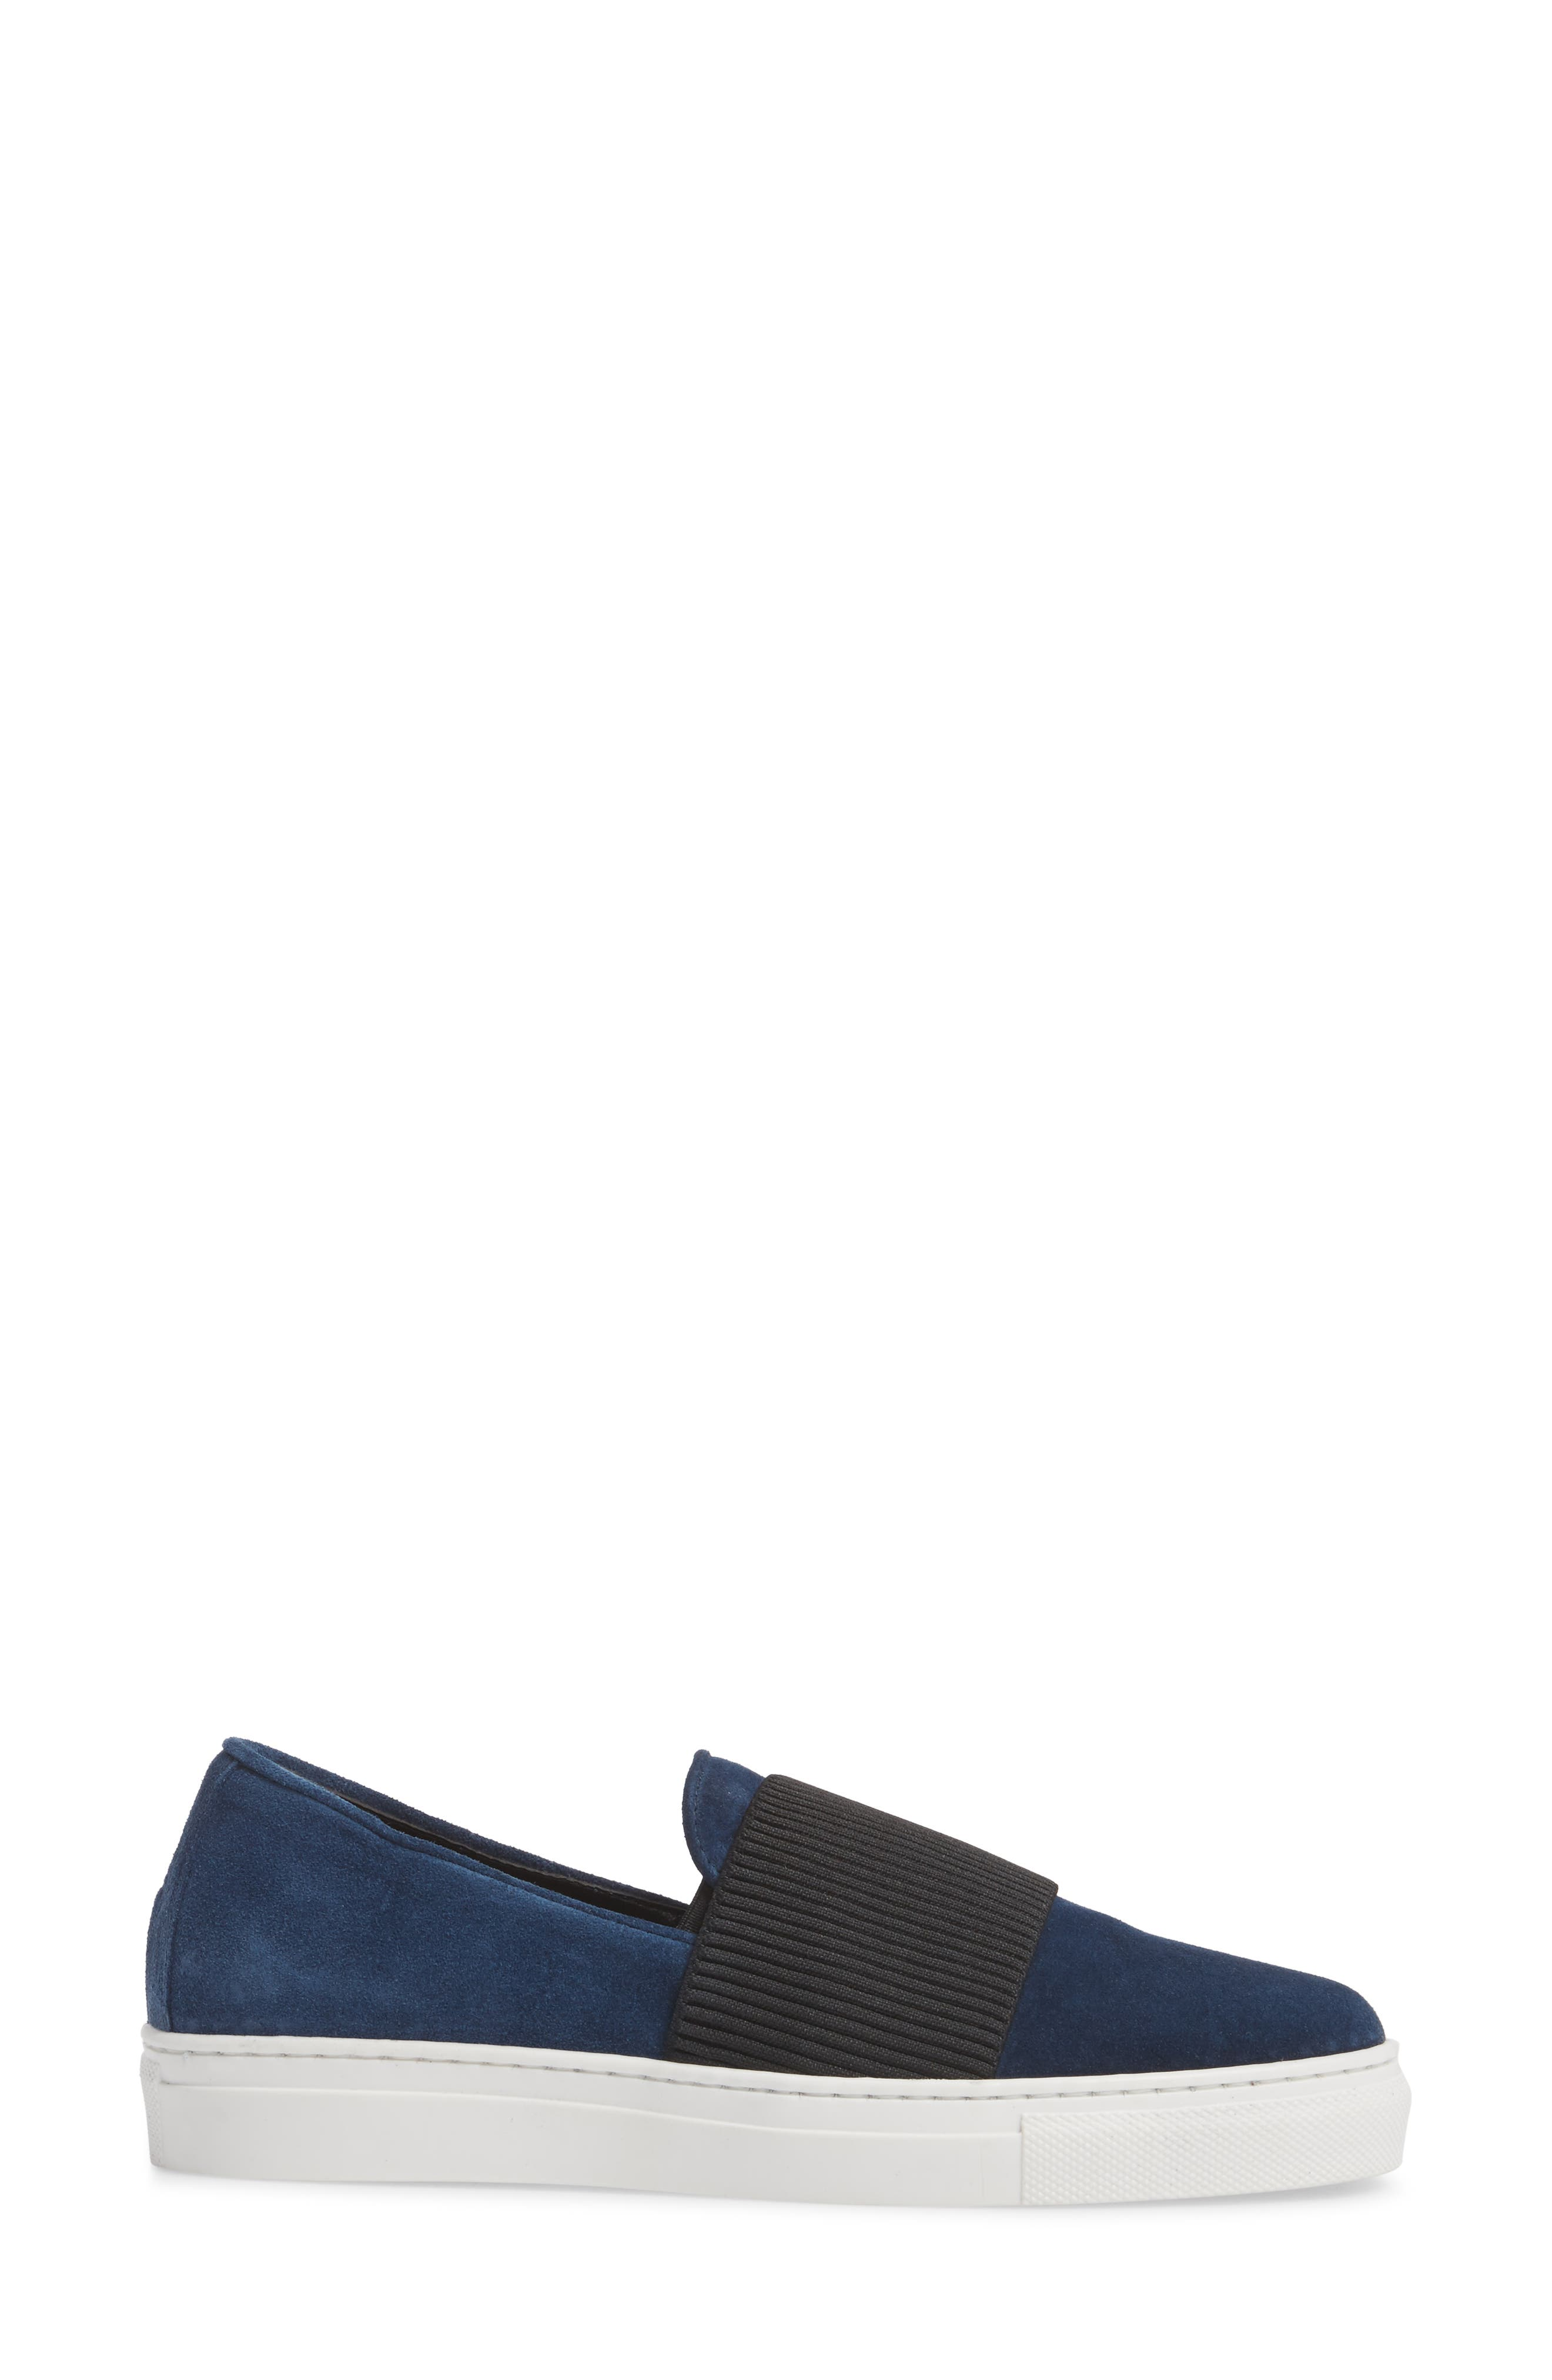 Otto Slip-On Sneaker,                             Alternate thumbnail 3, color,                             Navy Suede